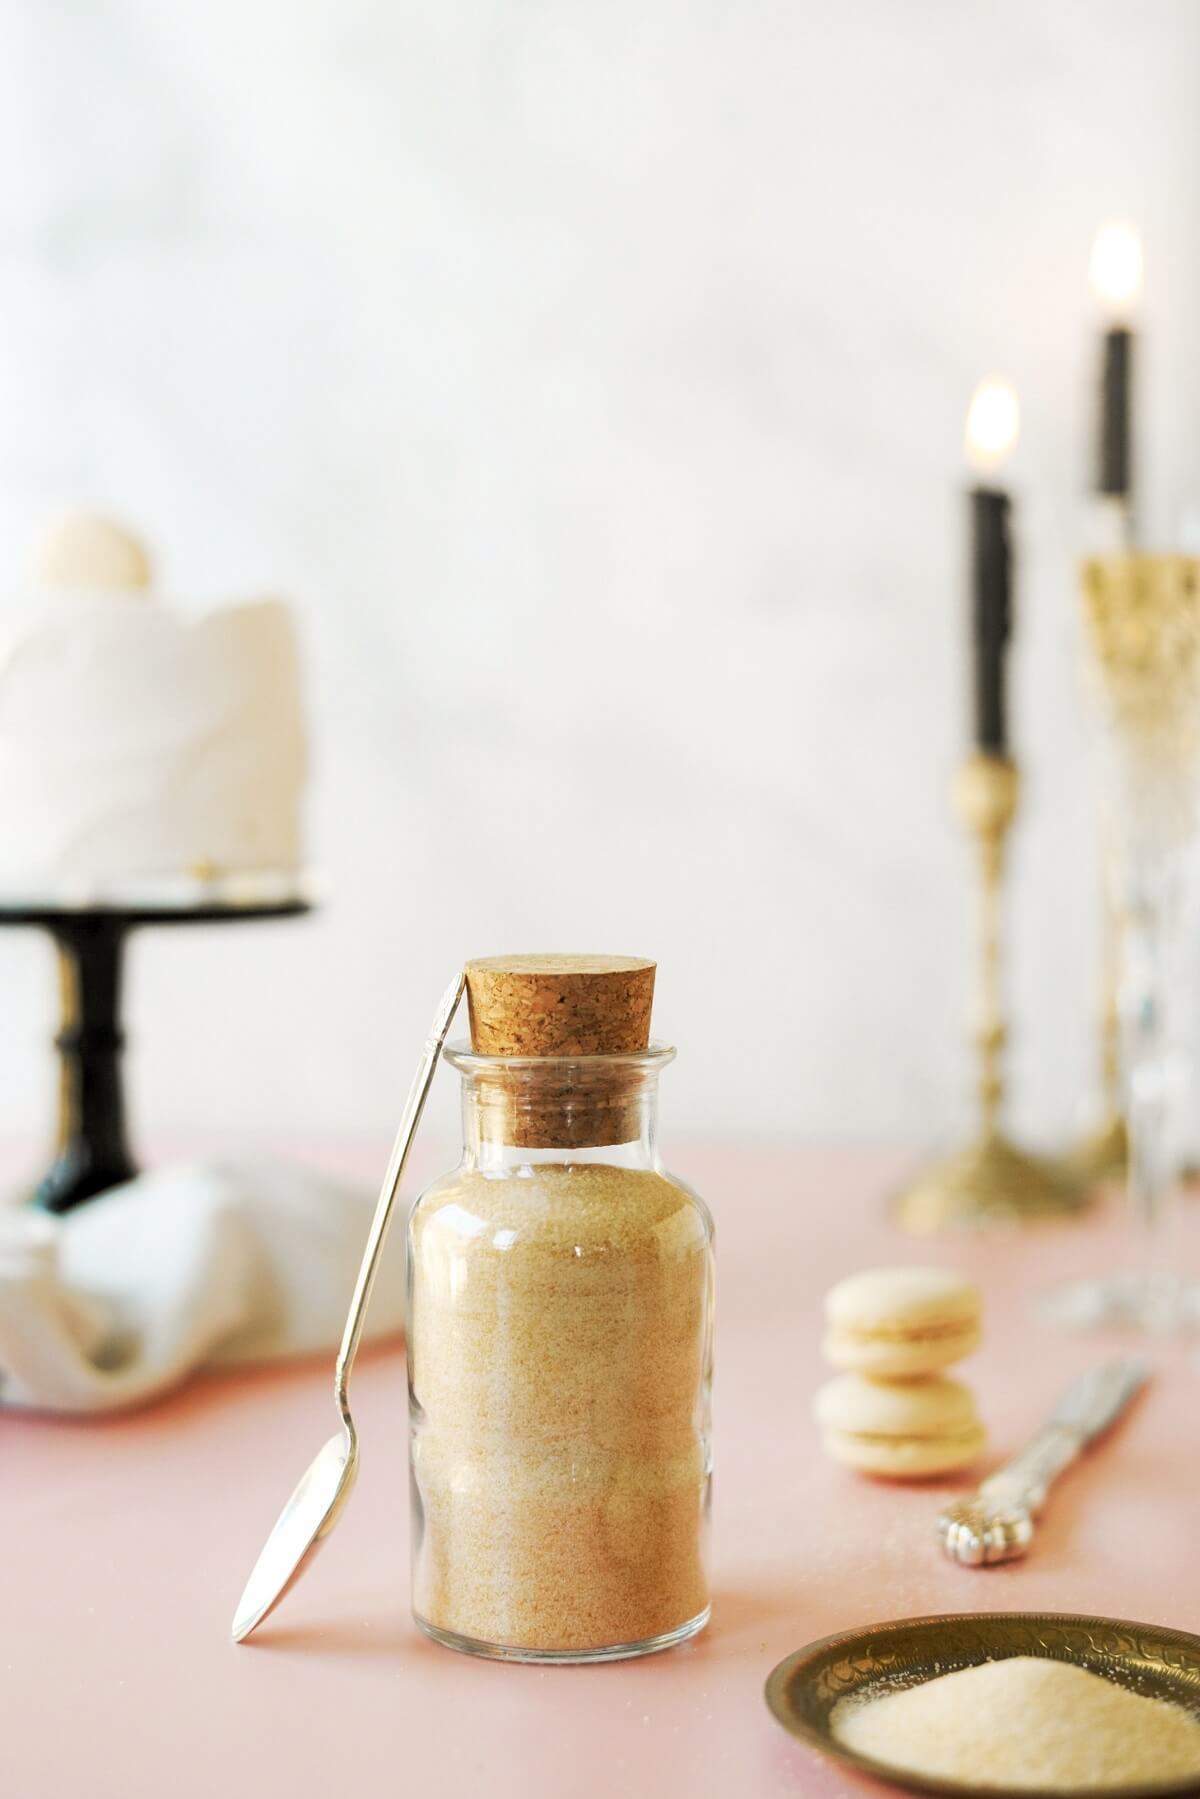 A glass jar filled with toasted sugar, with a cake, candles and macarons in the background.